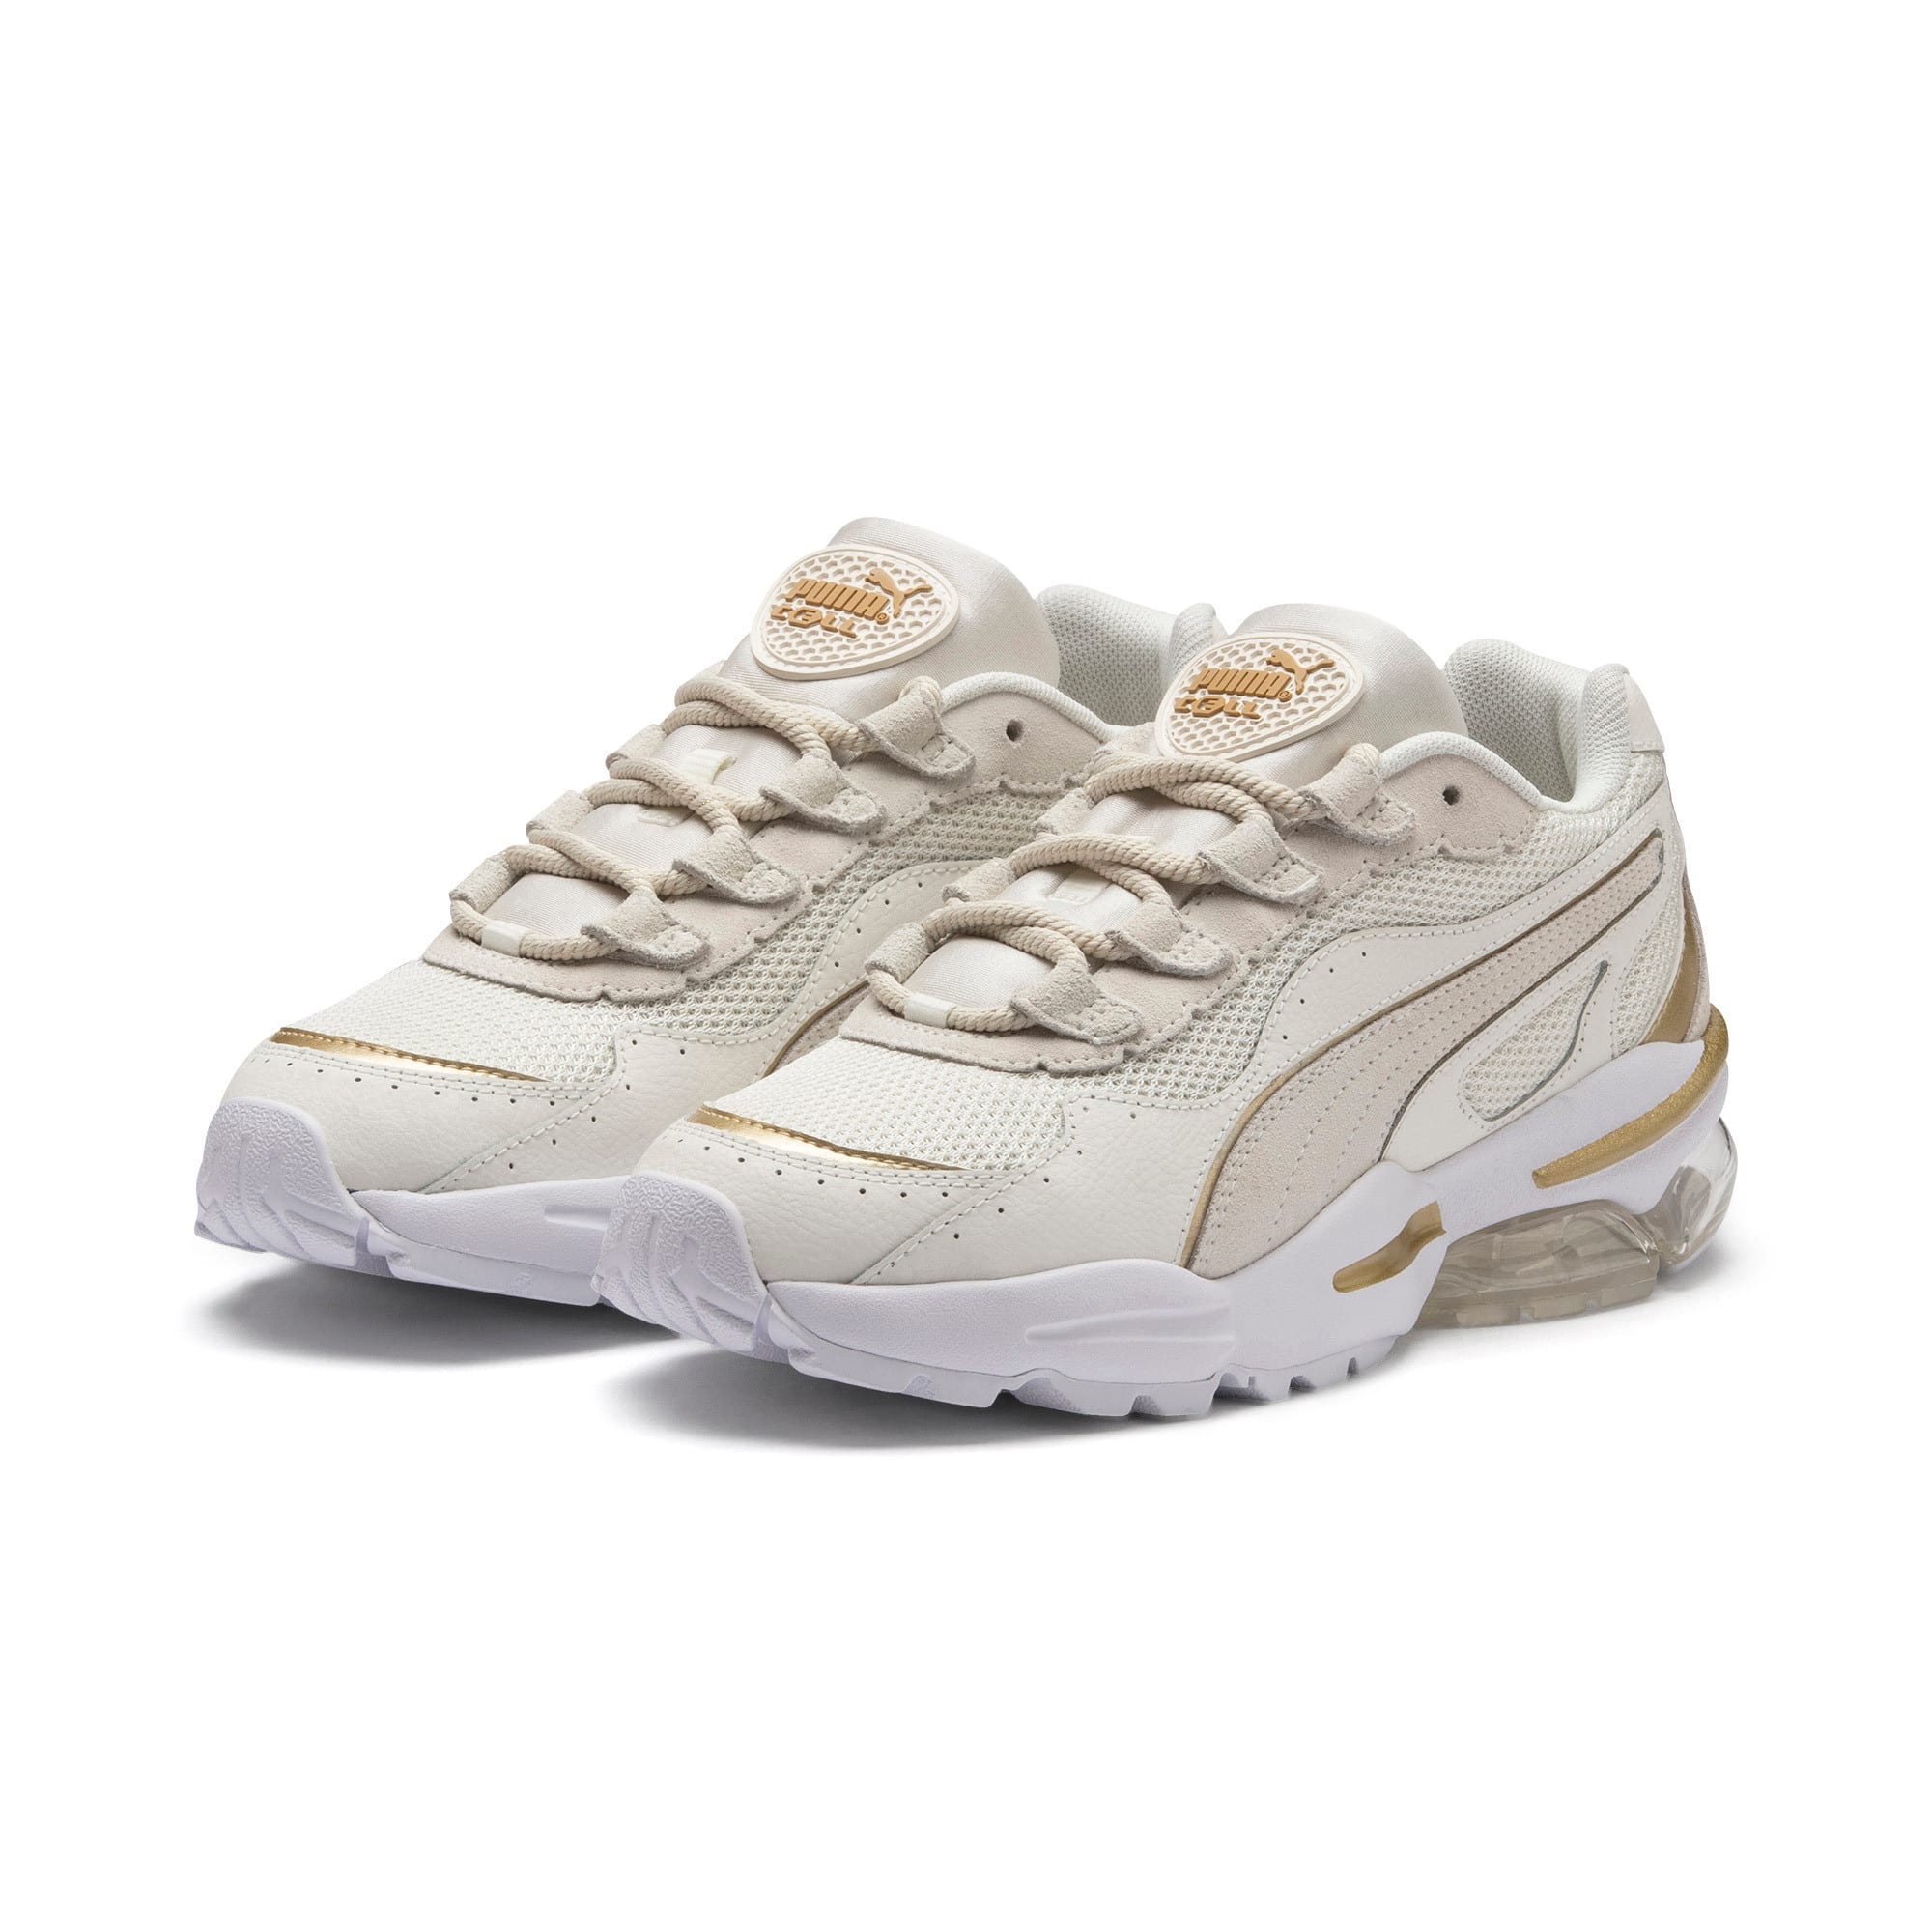 Thumbnail 3 of CELL Stellar Soft sportschoenen voor dames, Puma White-Puma Team Gold, medium